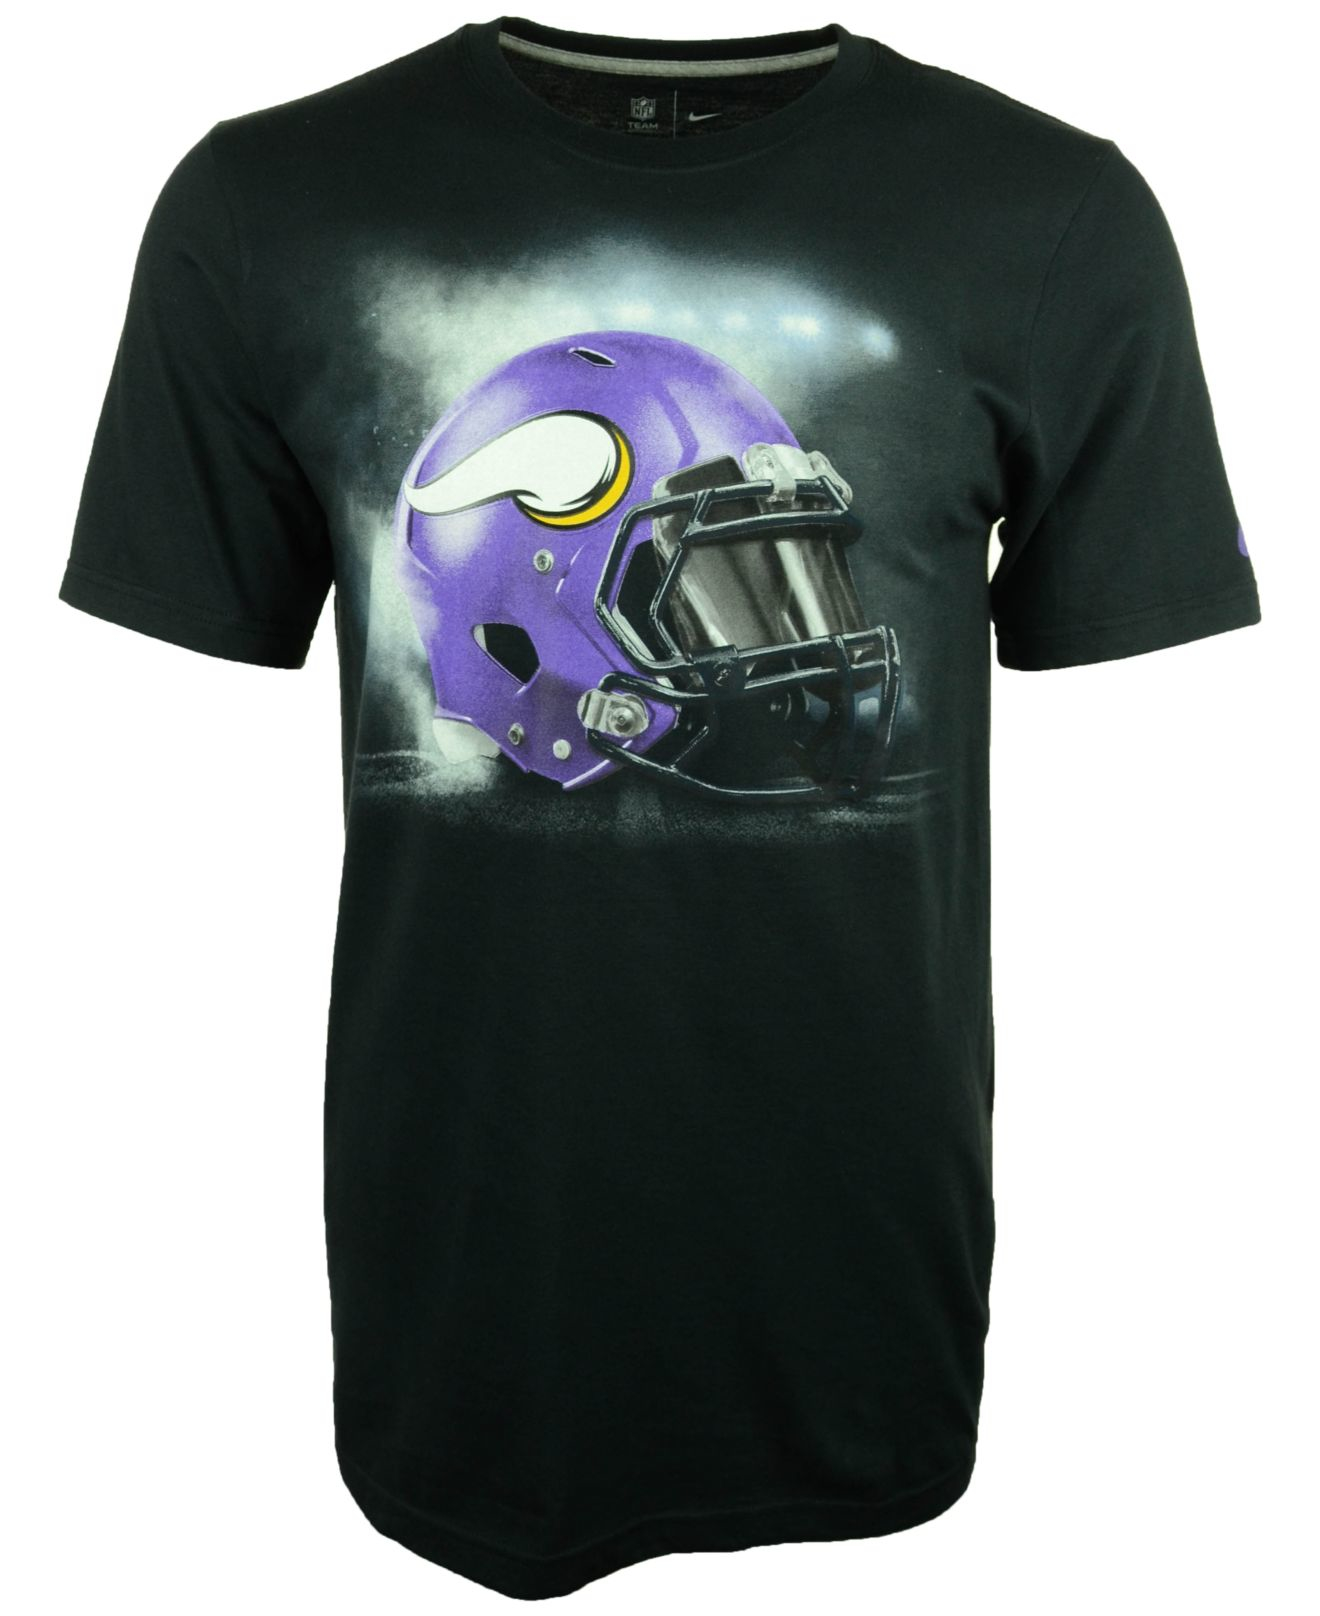 Lyst - Nike Men s Minnesota Vikings Vapor Helmet Graphic T-shirt in ... 13db004c2